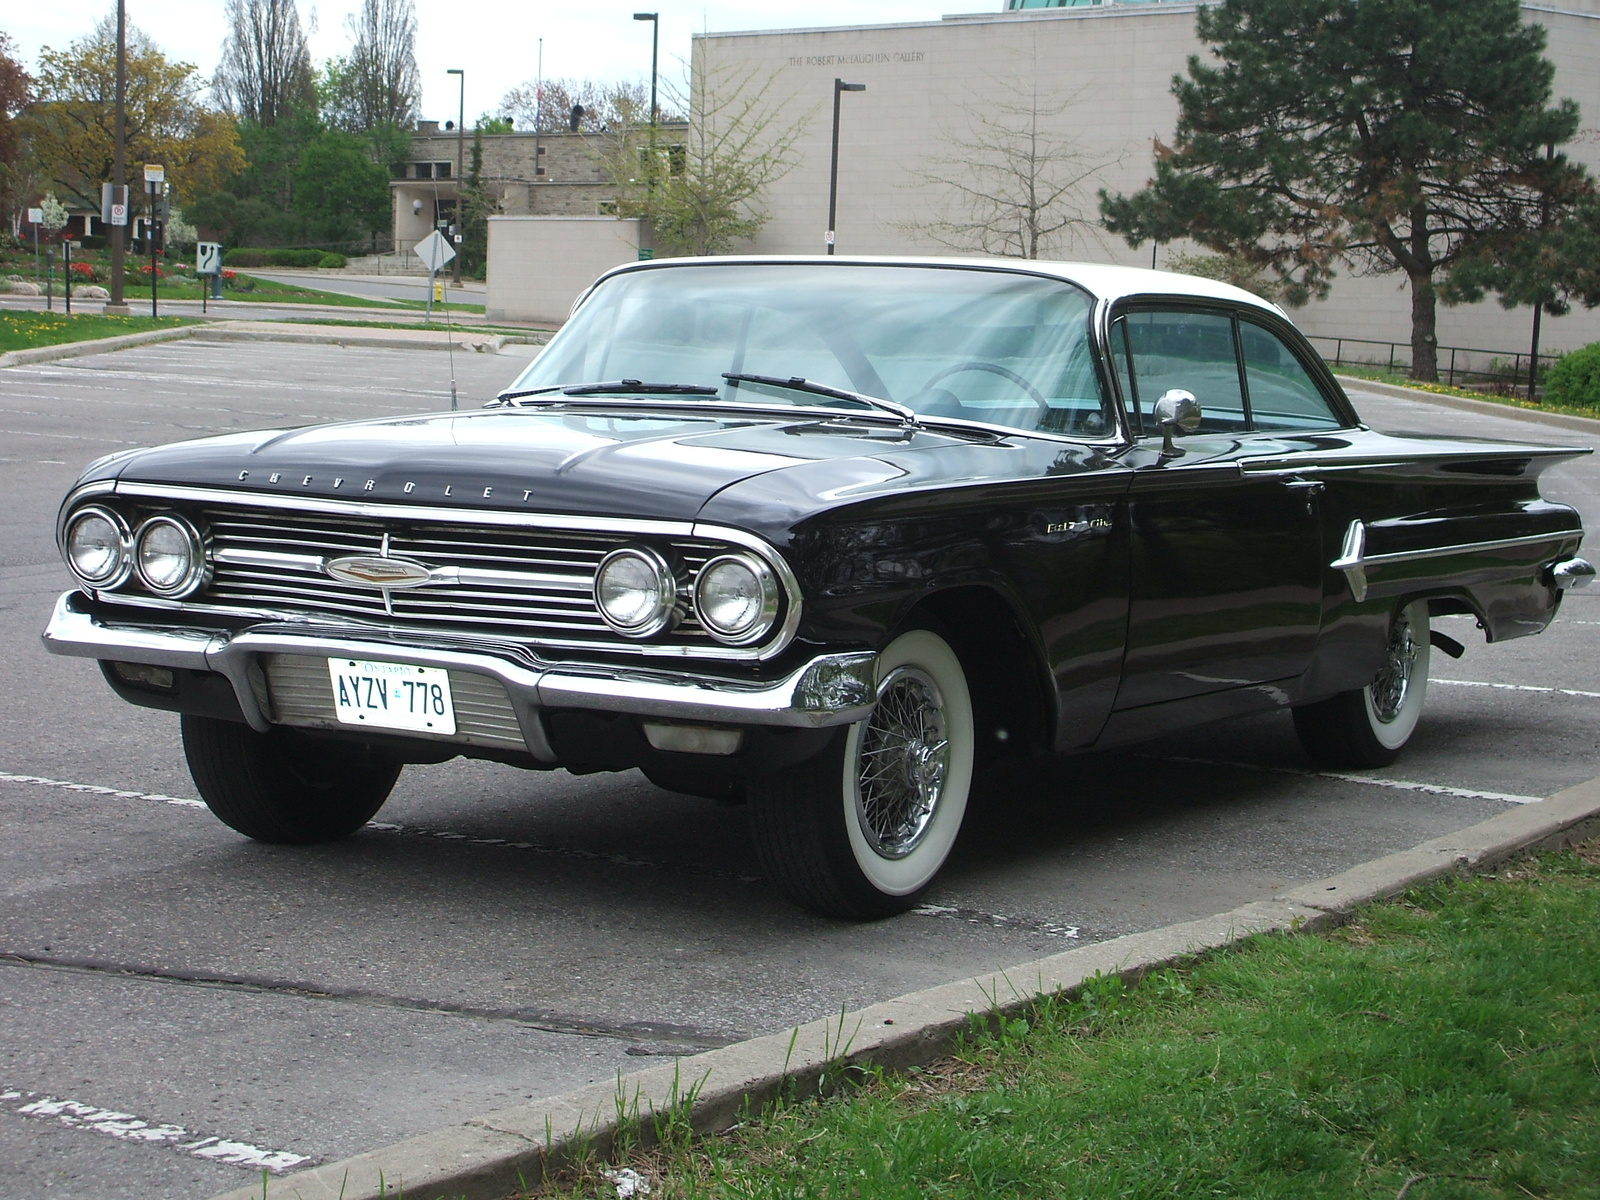 Chevrolet Bel air 1968 photo - 5